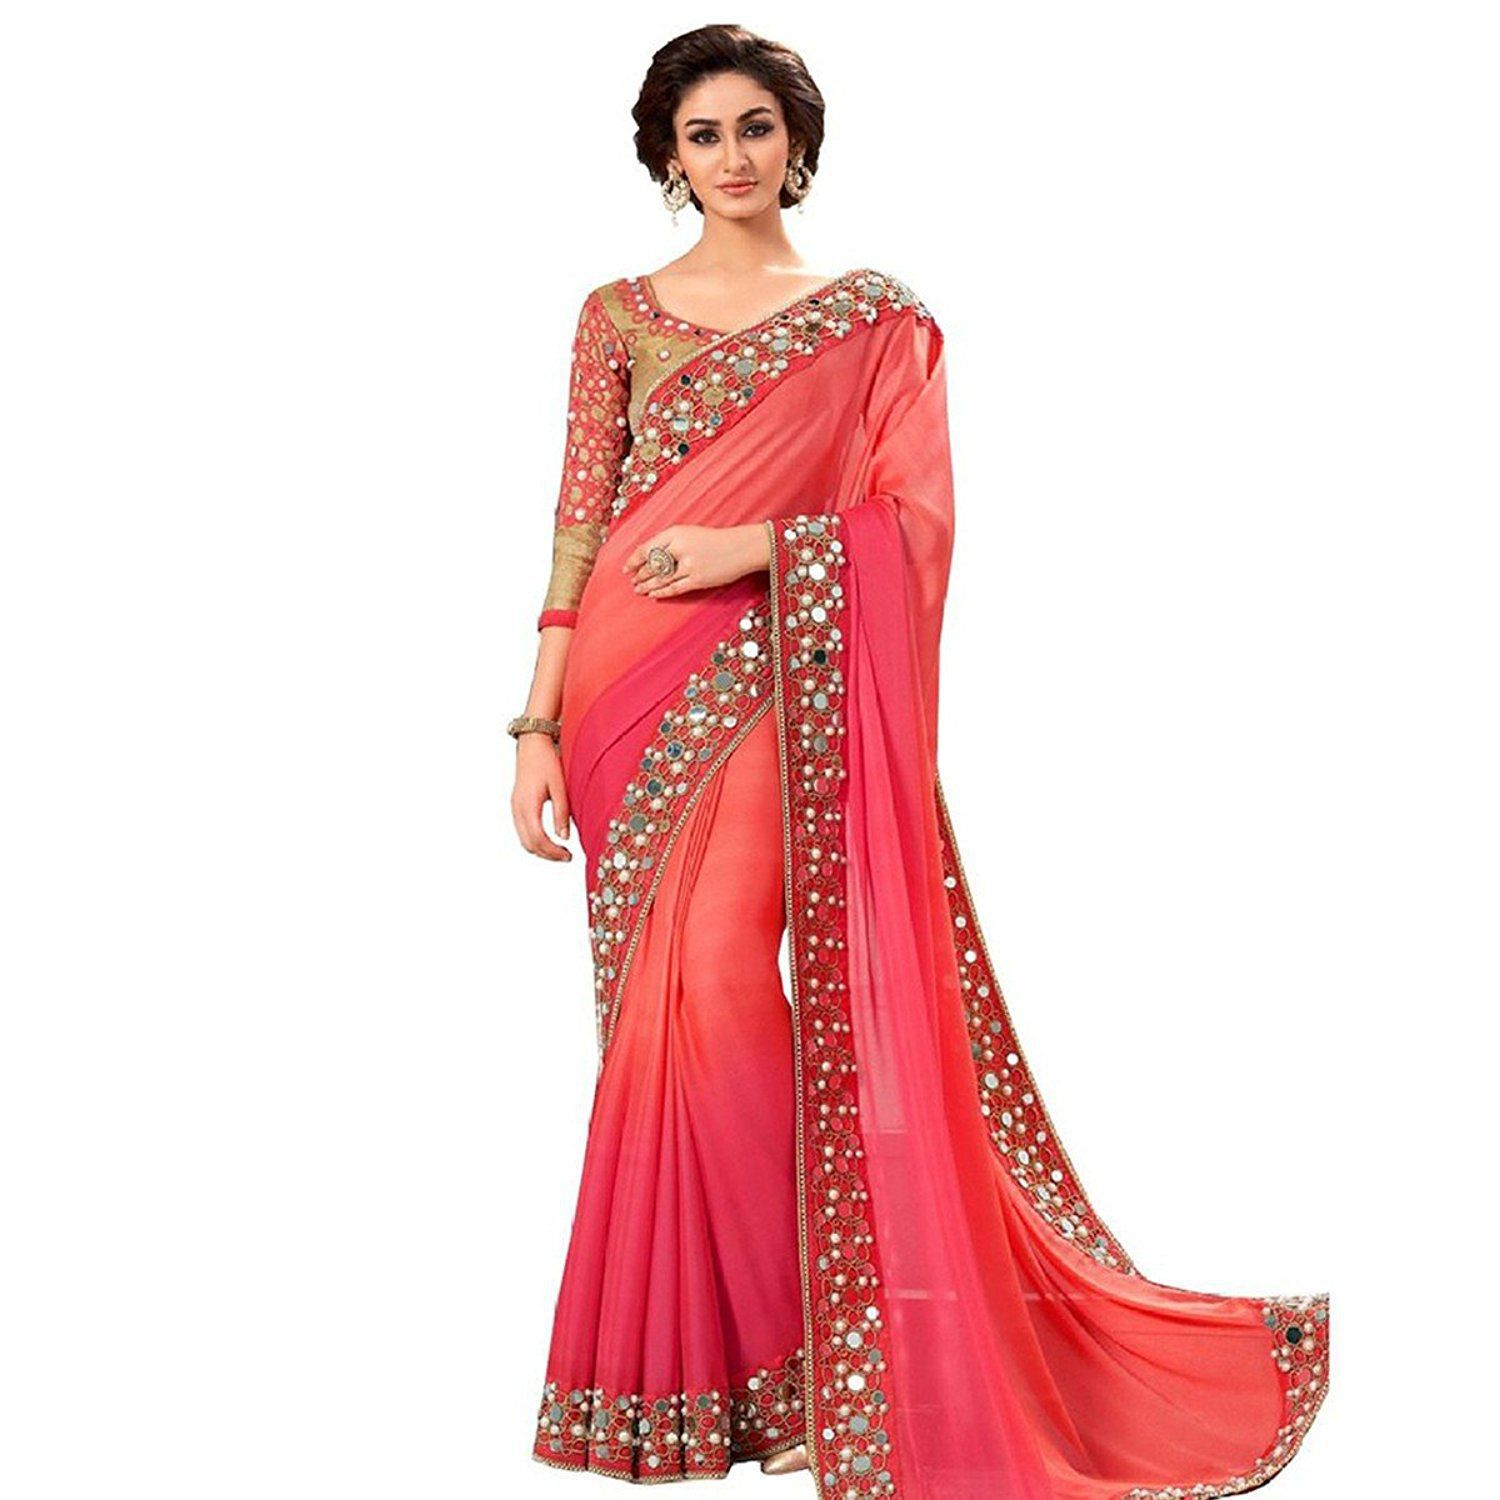 5e1d15126d THE SUHAGIYA SHOPPING Red and Pink Georgette Saree - Buy THE SUHAGIYA  SHOPPING Red and Pink Georgette Saree Online at Low Price - Snapdeal.com